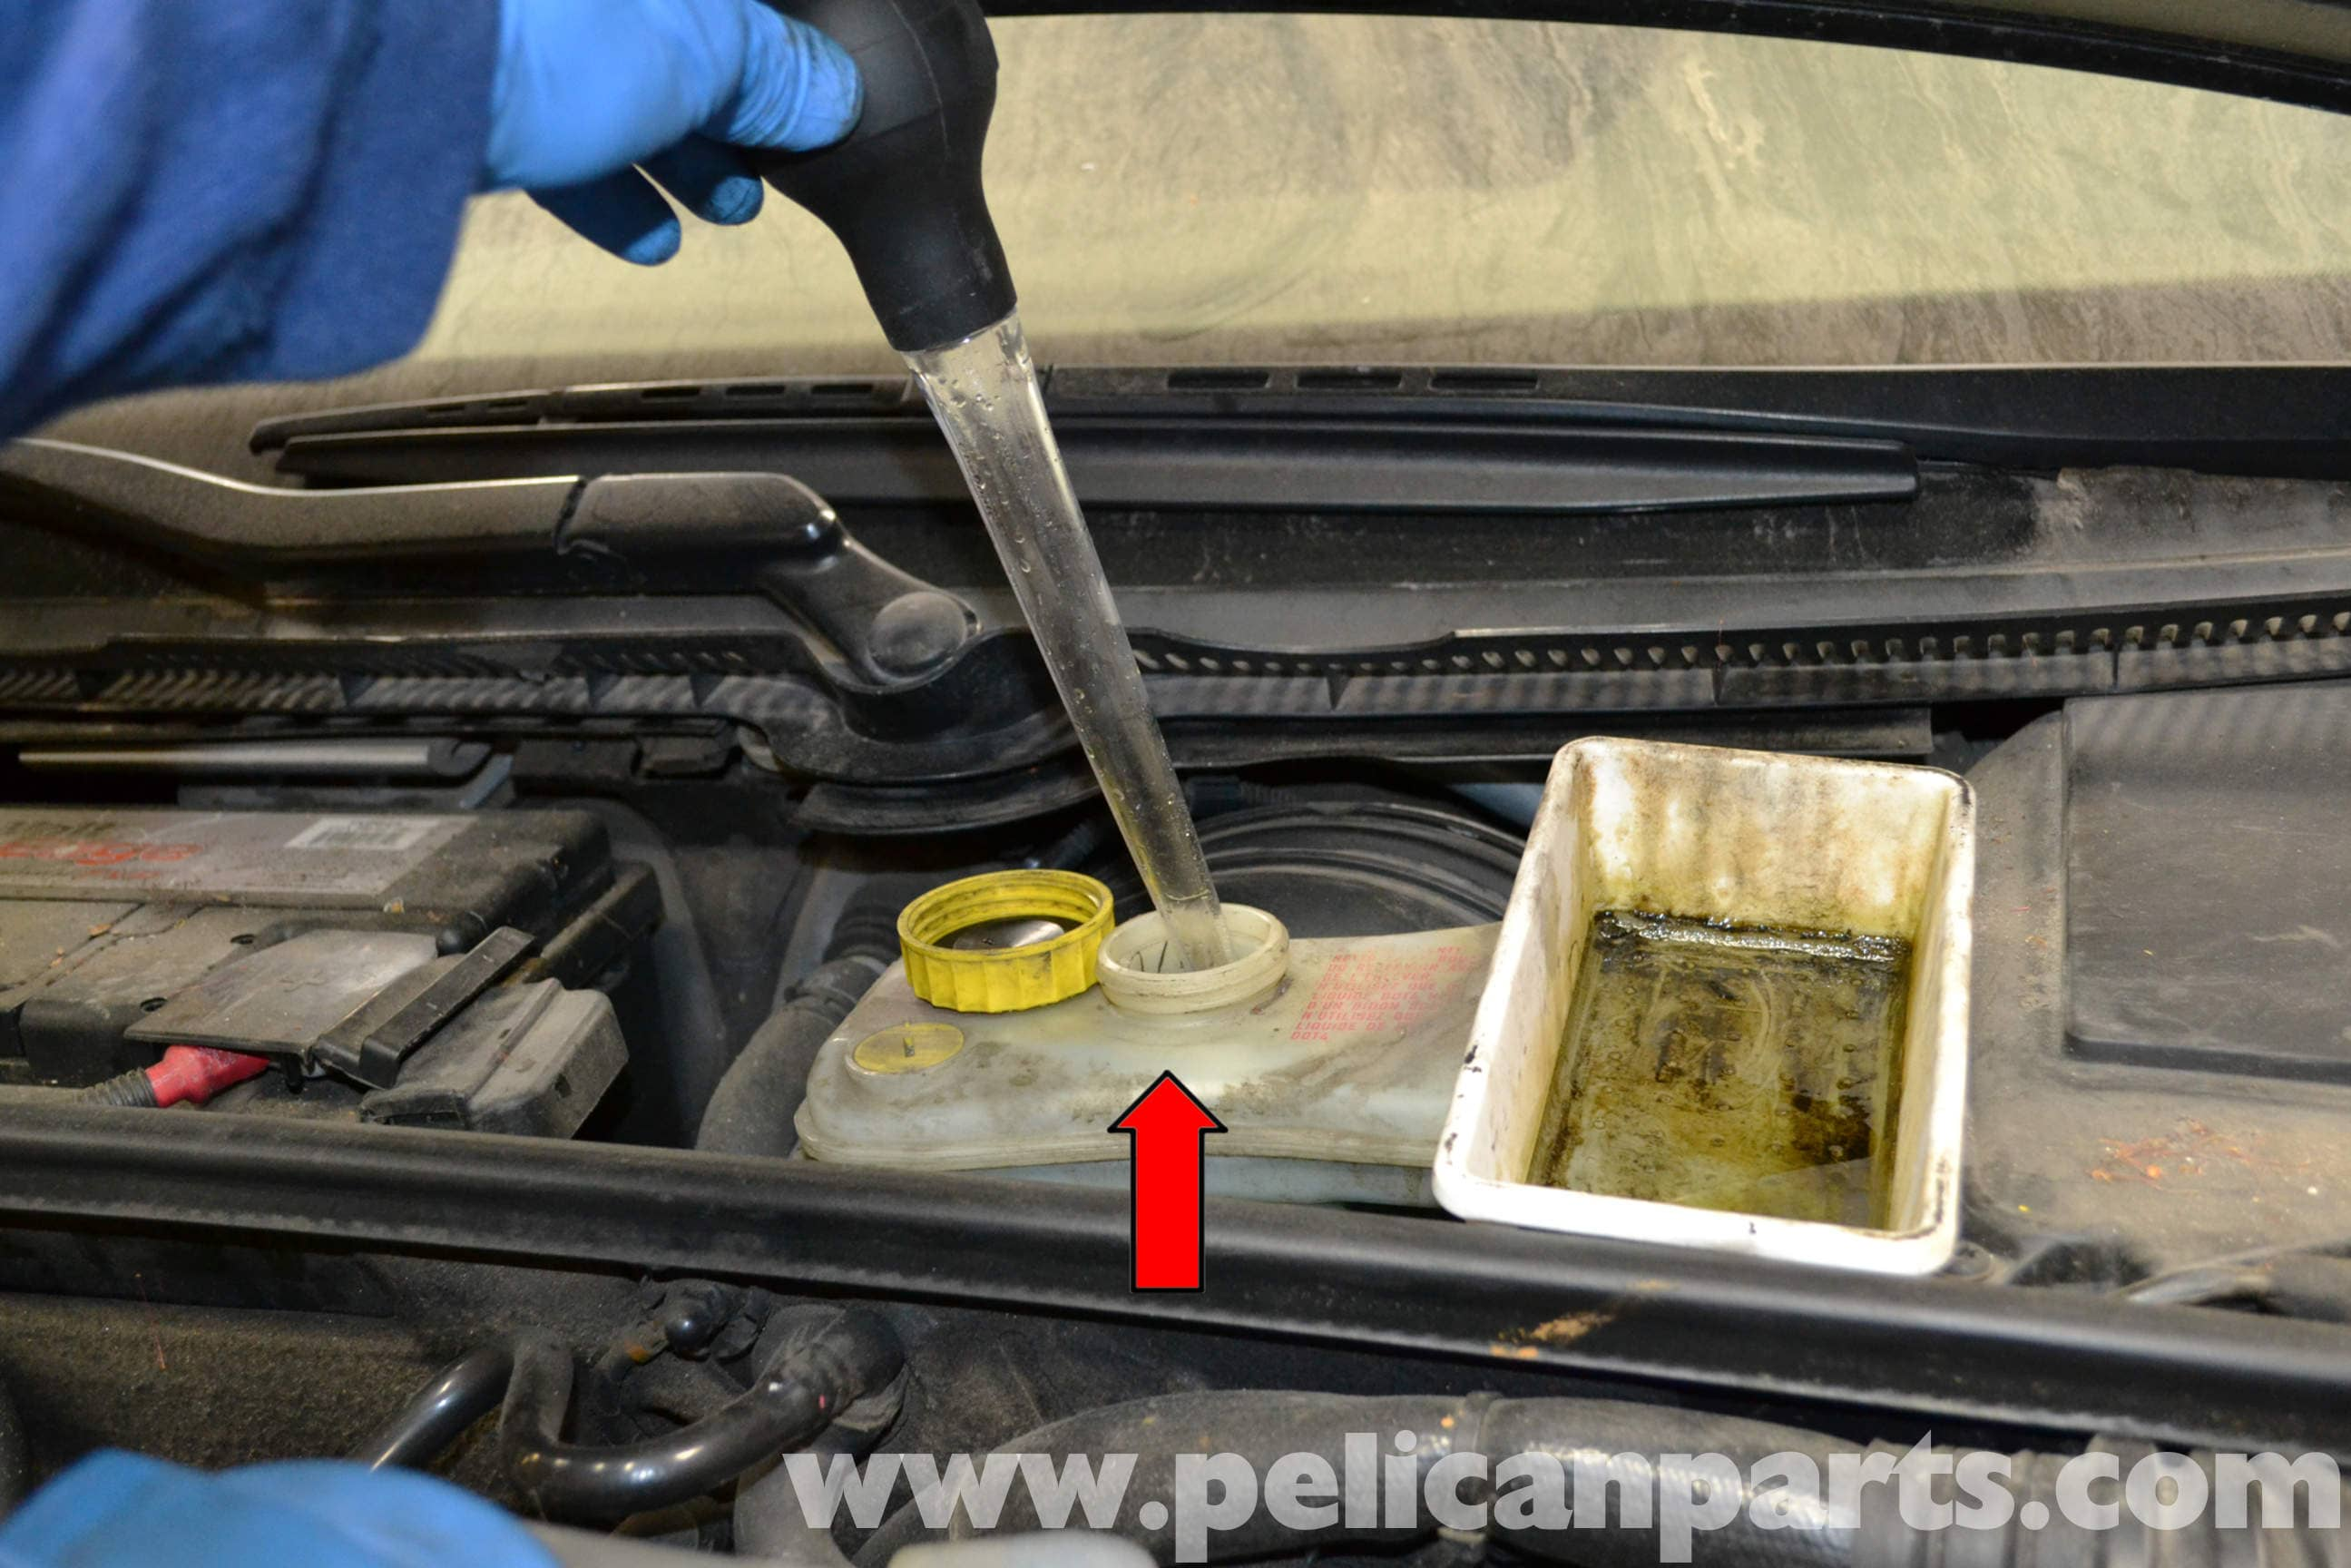 Audi A4 B6 Front Brake Pad Replacement (2002-2008) | Pelican